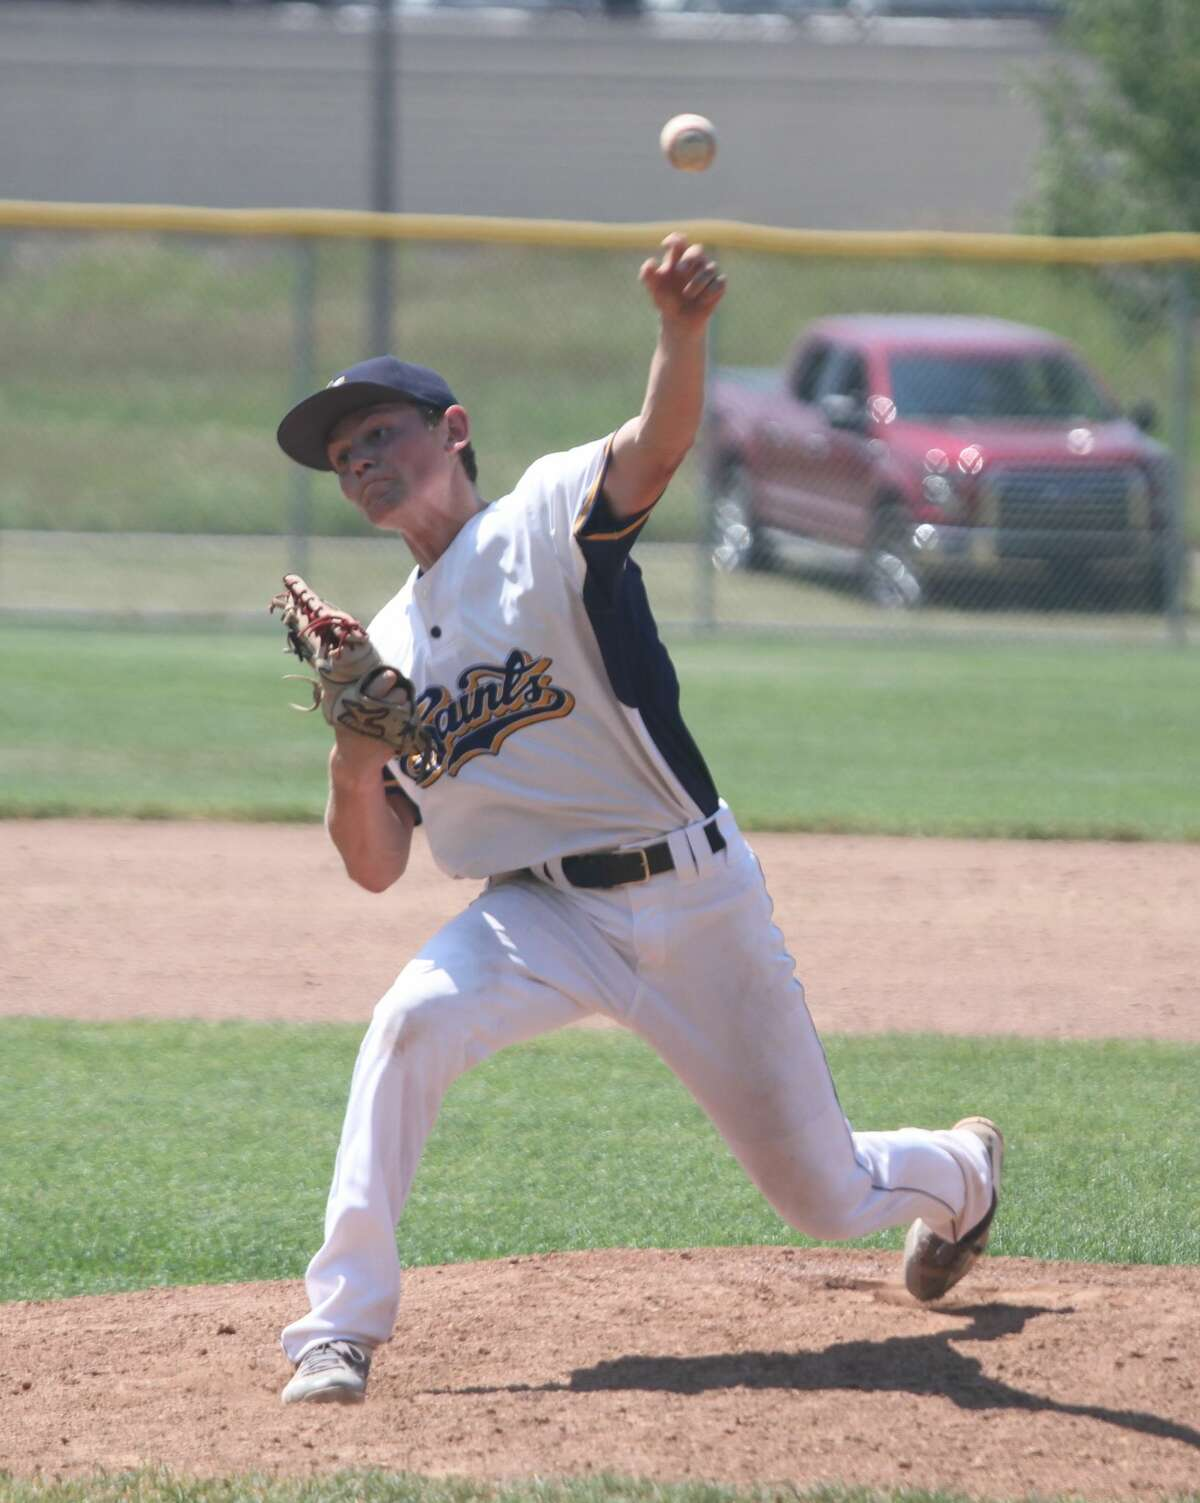 The Manistee Saints hosted the Northern Michigan Dogmen at Rietz Park on Saturday.